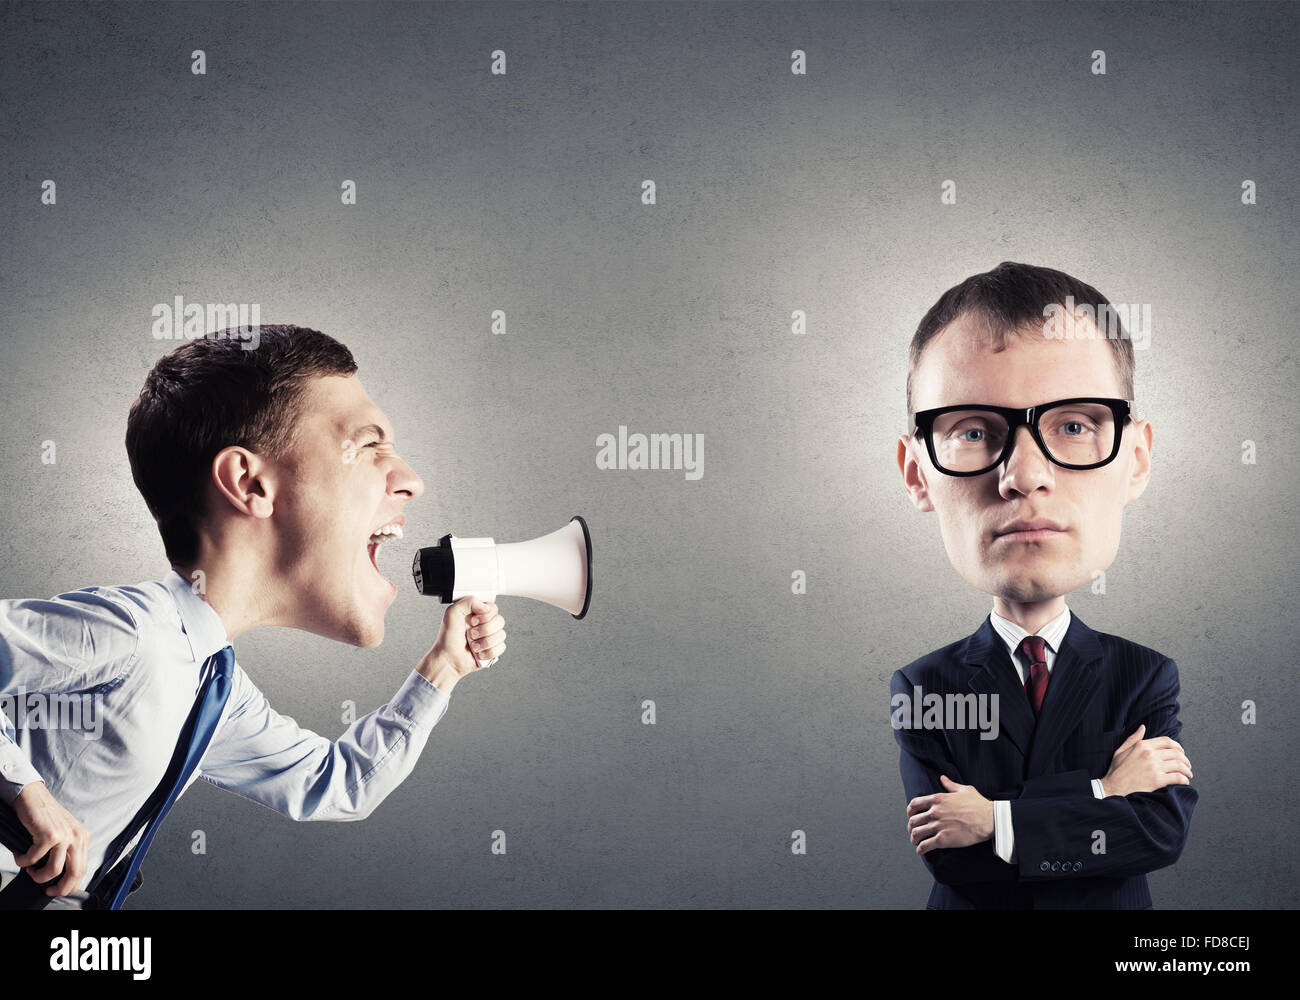 6a2cabdf620 Funny young man with big head screaming emotionally in megaphone - Stock  Image